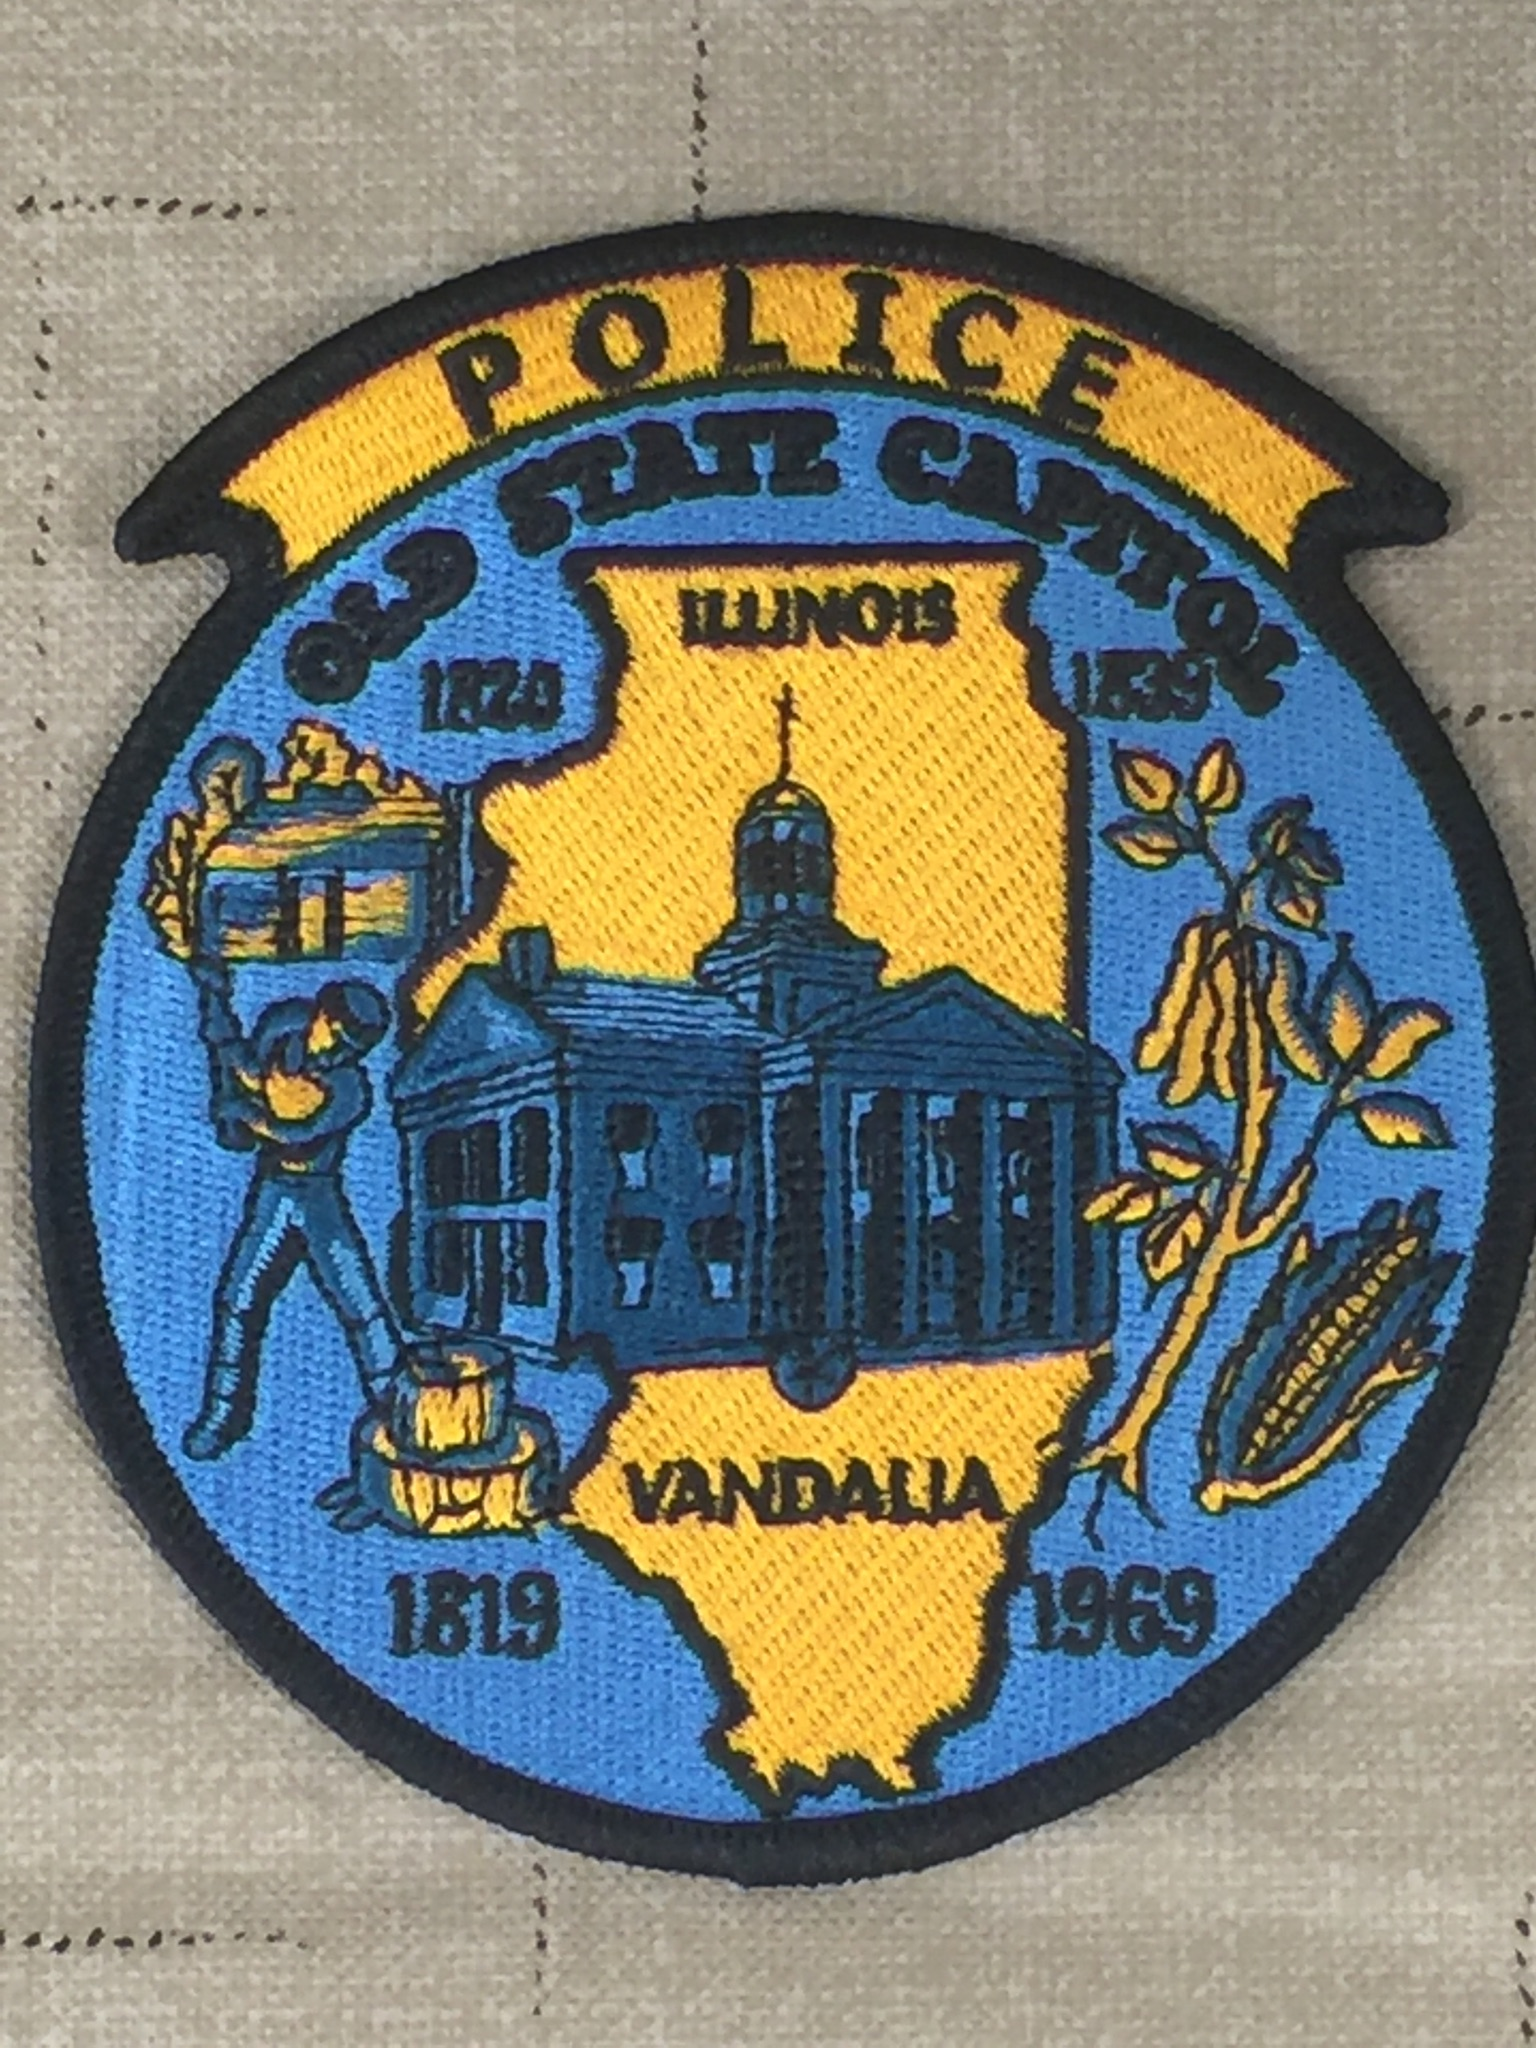 Texas man arrested in Vandalia for Vehicle theft